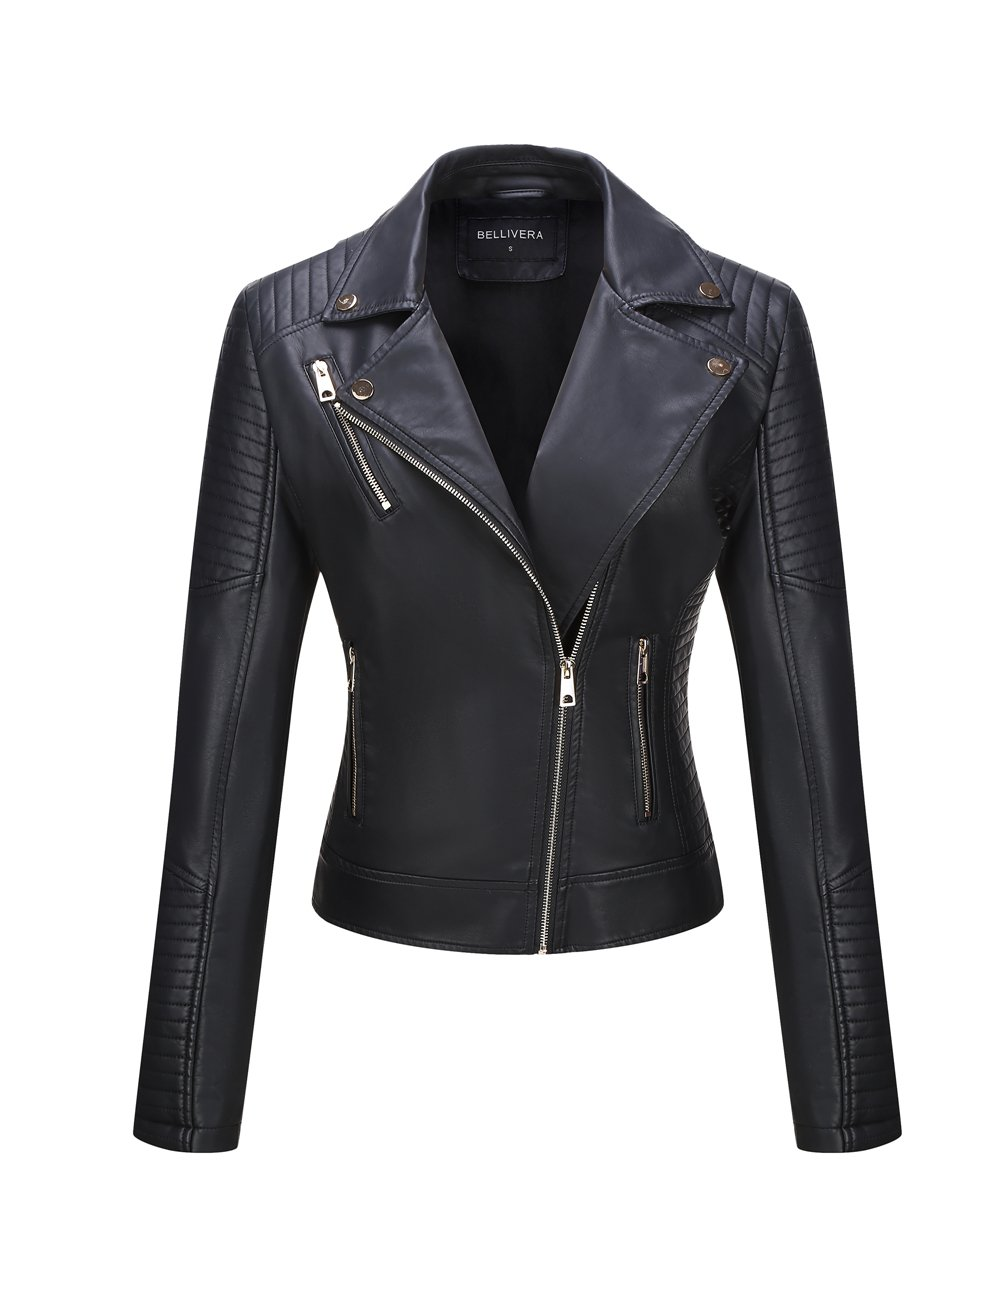 Bellivera Women's Faux Leather Jackets for Women Leather Coat for Winter Casual Short Jacket